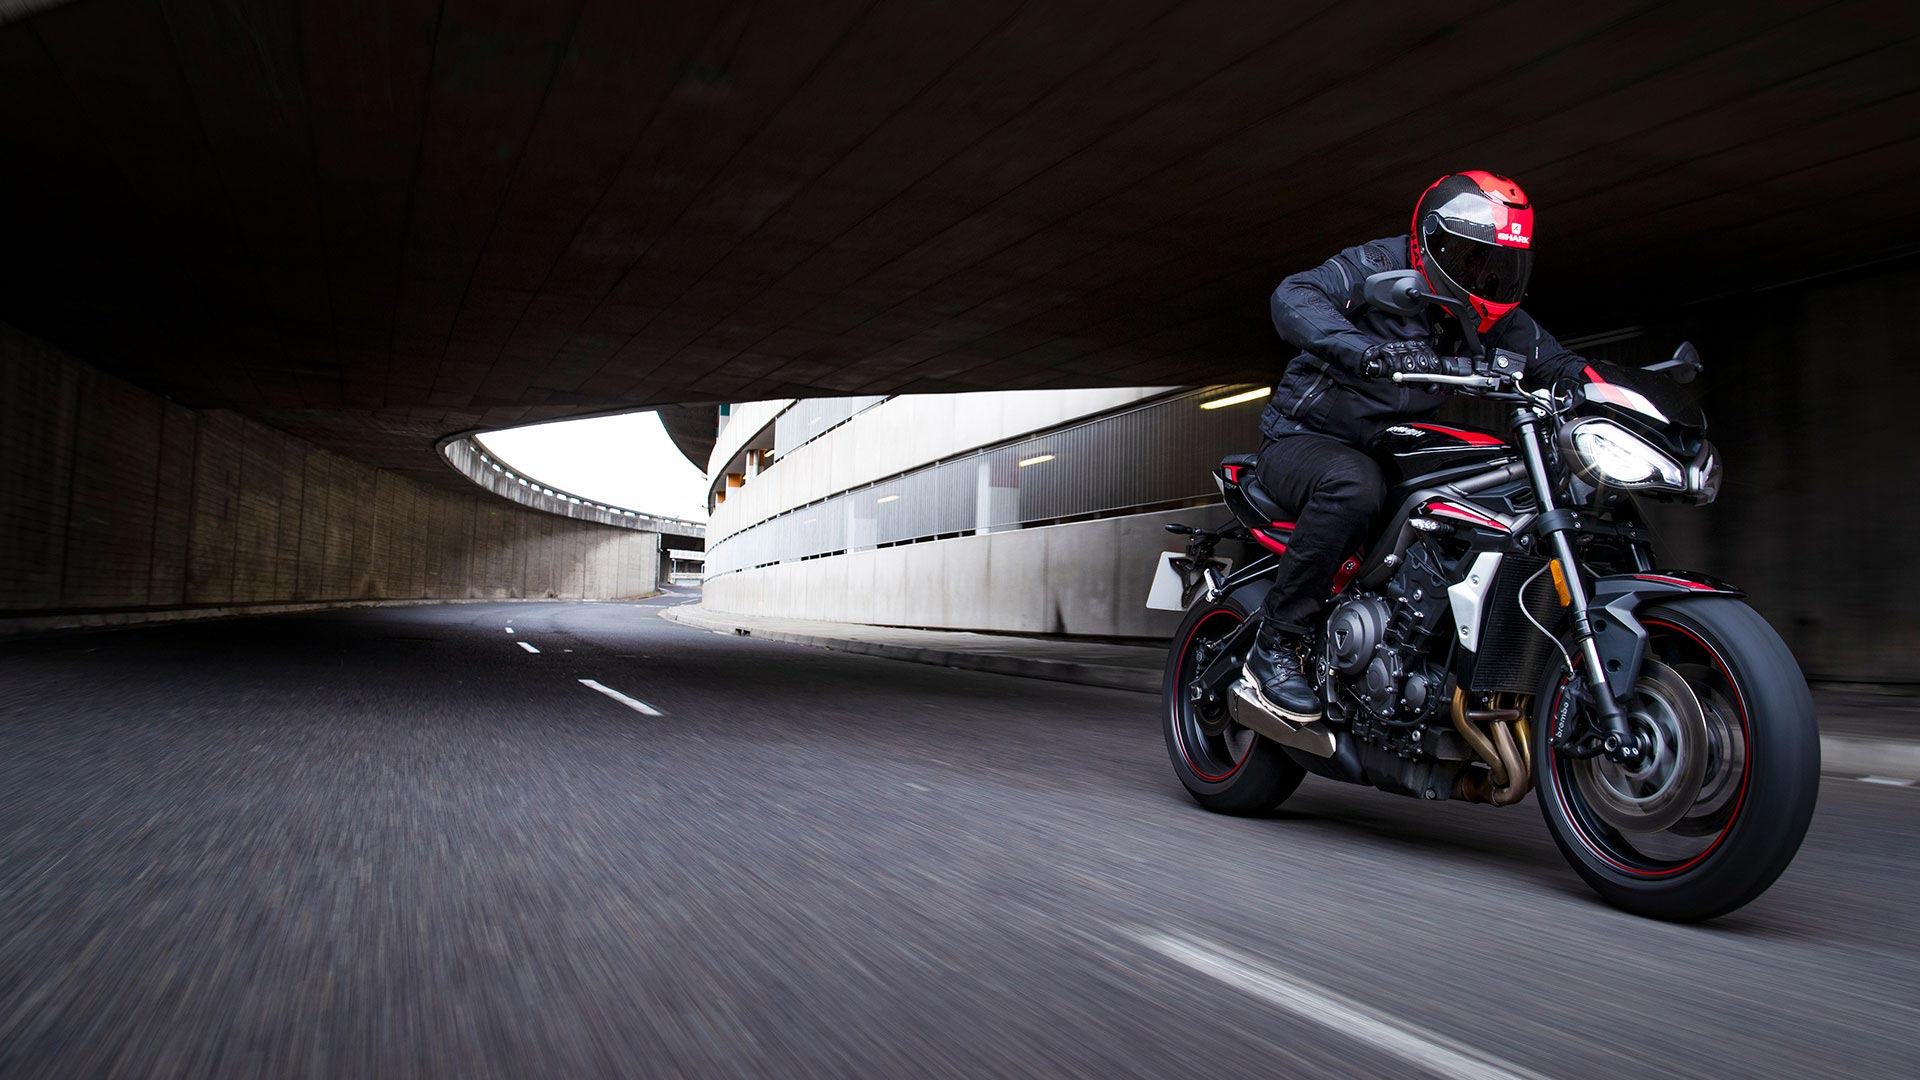 Street Triple R riding through a tunnel